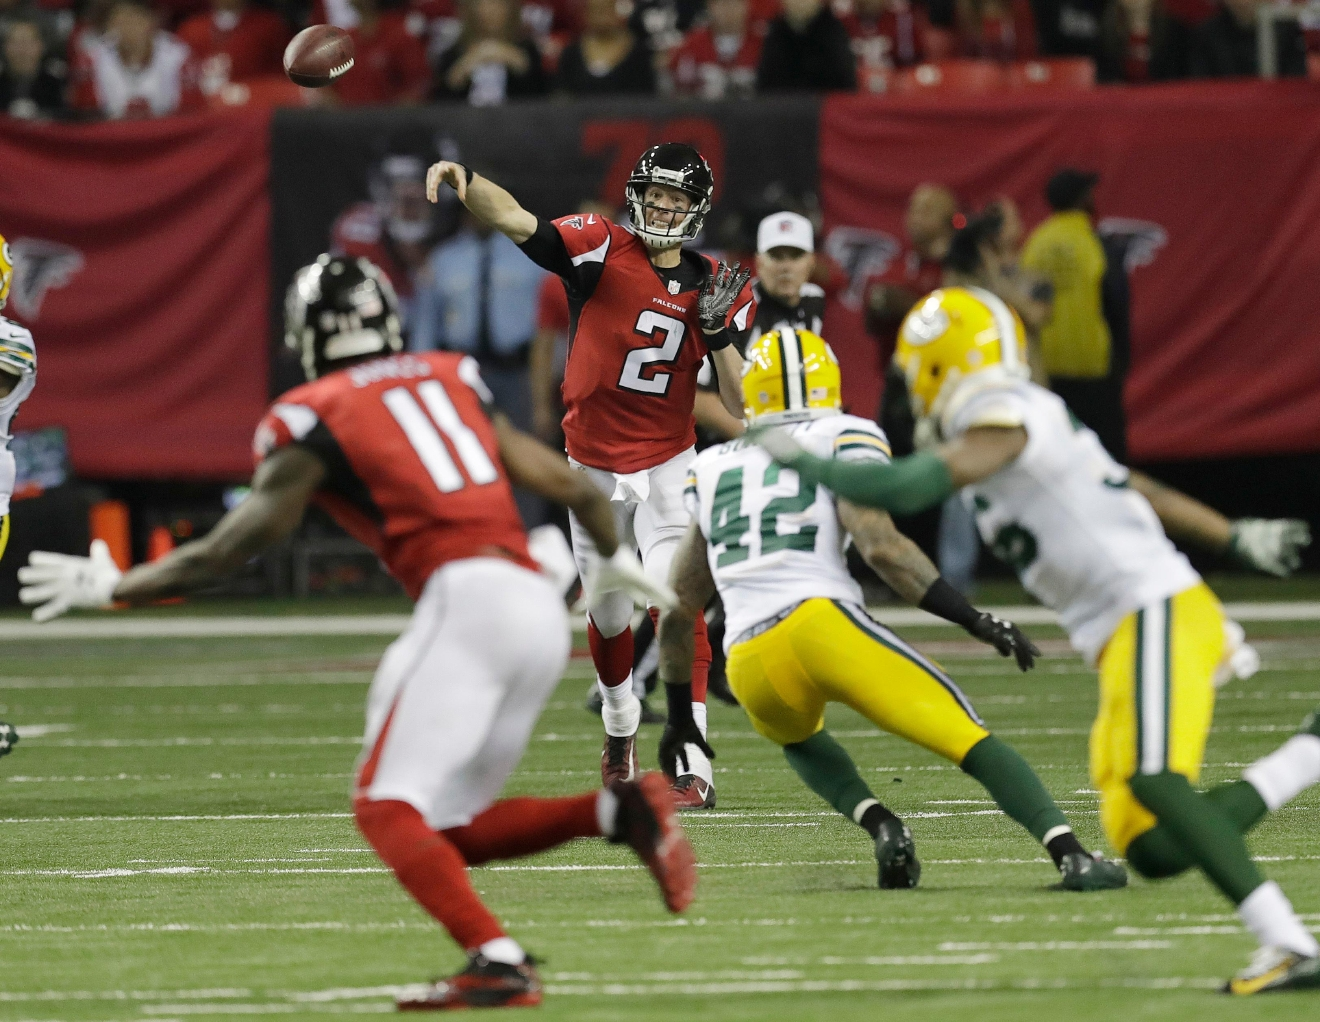 Atlanta Falcons' Matt Ryan throws a touchdown pass to Julio Jones (11) during the second half of the NFC championship game against the Green Bay Packers Sunday, Jan. 22, 2017, in Atlanta. (AP Photo/David J. Phillip)